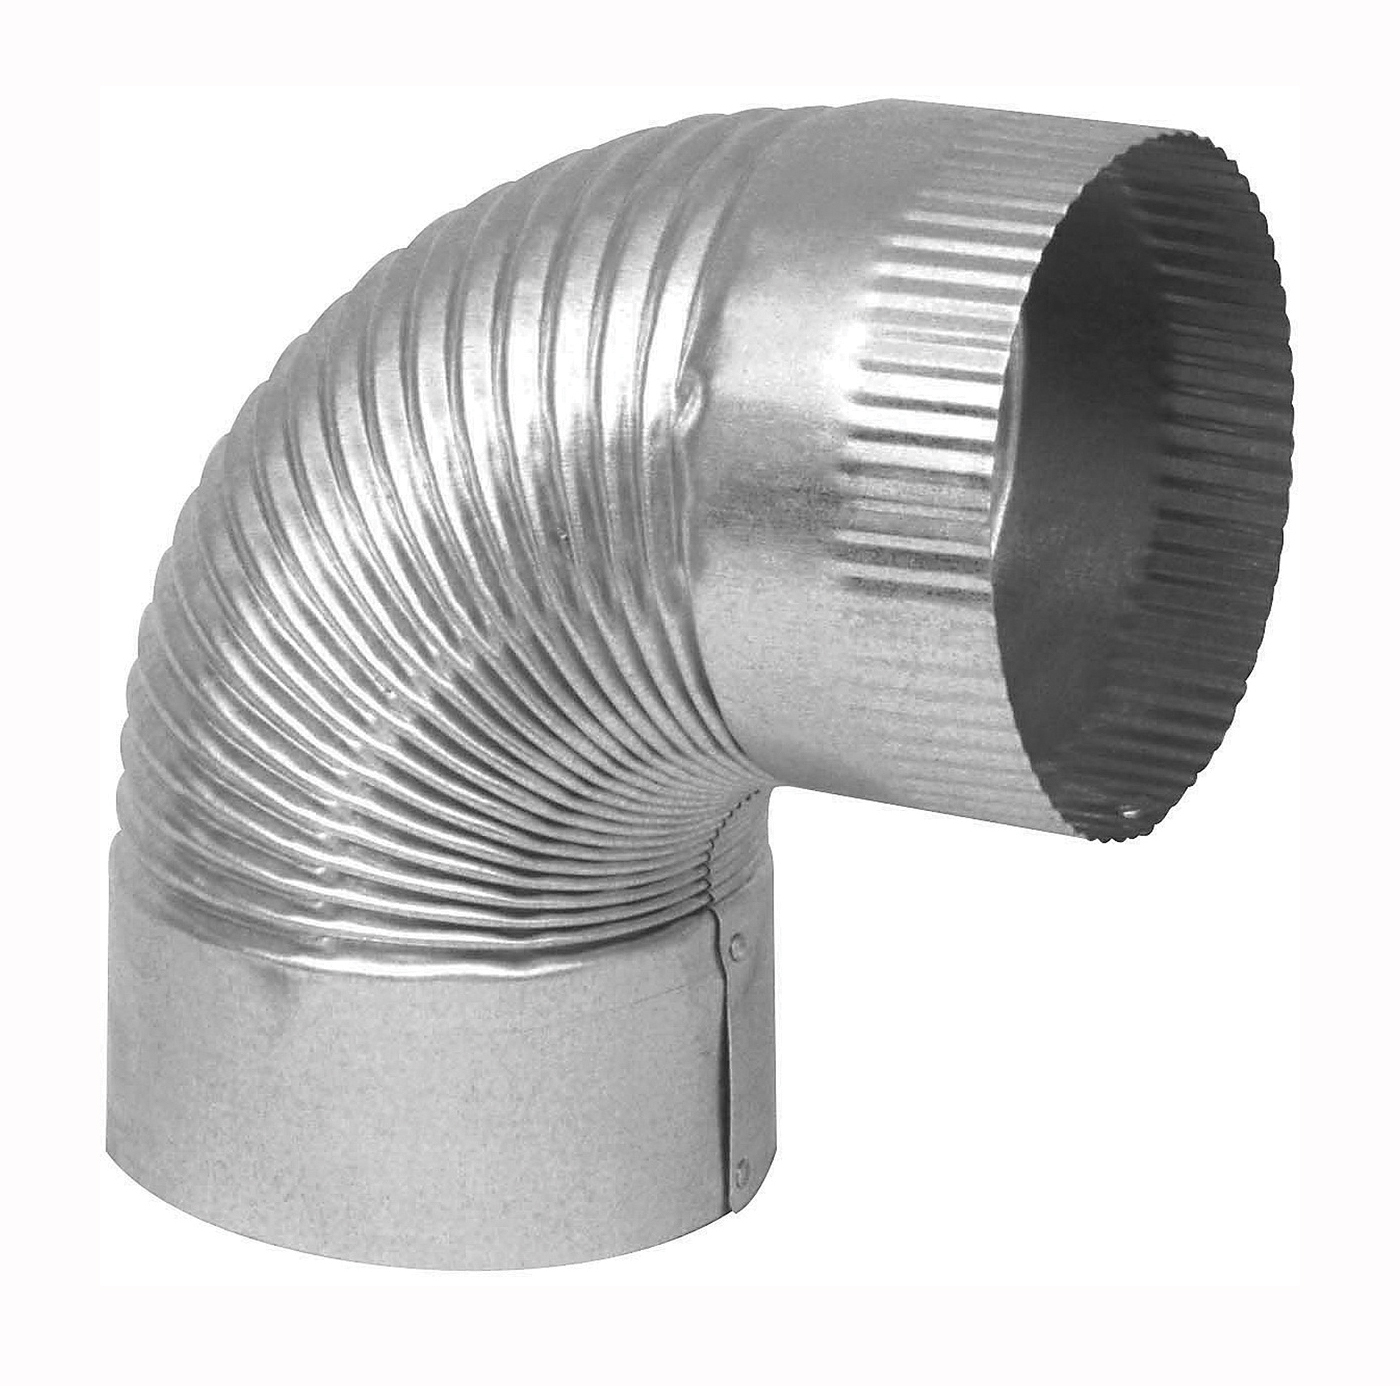 Picture of Imperial GV0328 Stove Pipe Elbow, 7 in Connection, 28 Gauge, Galvanized